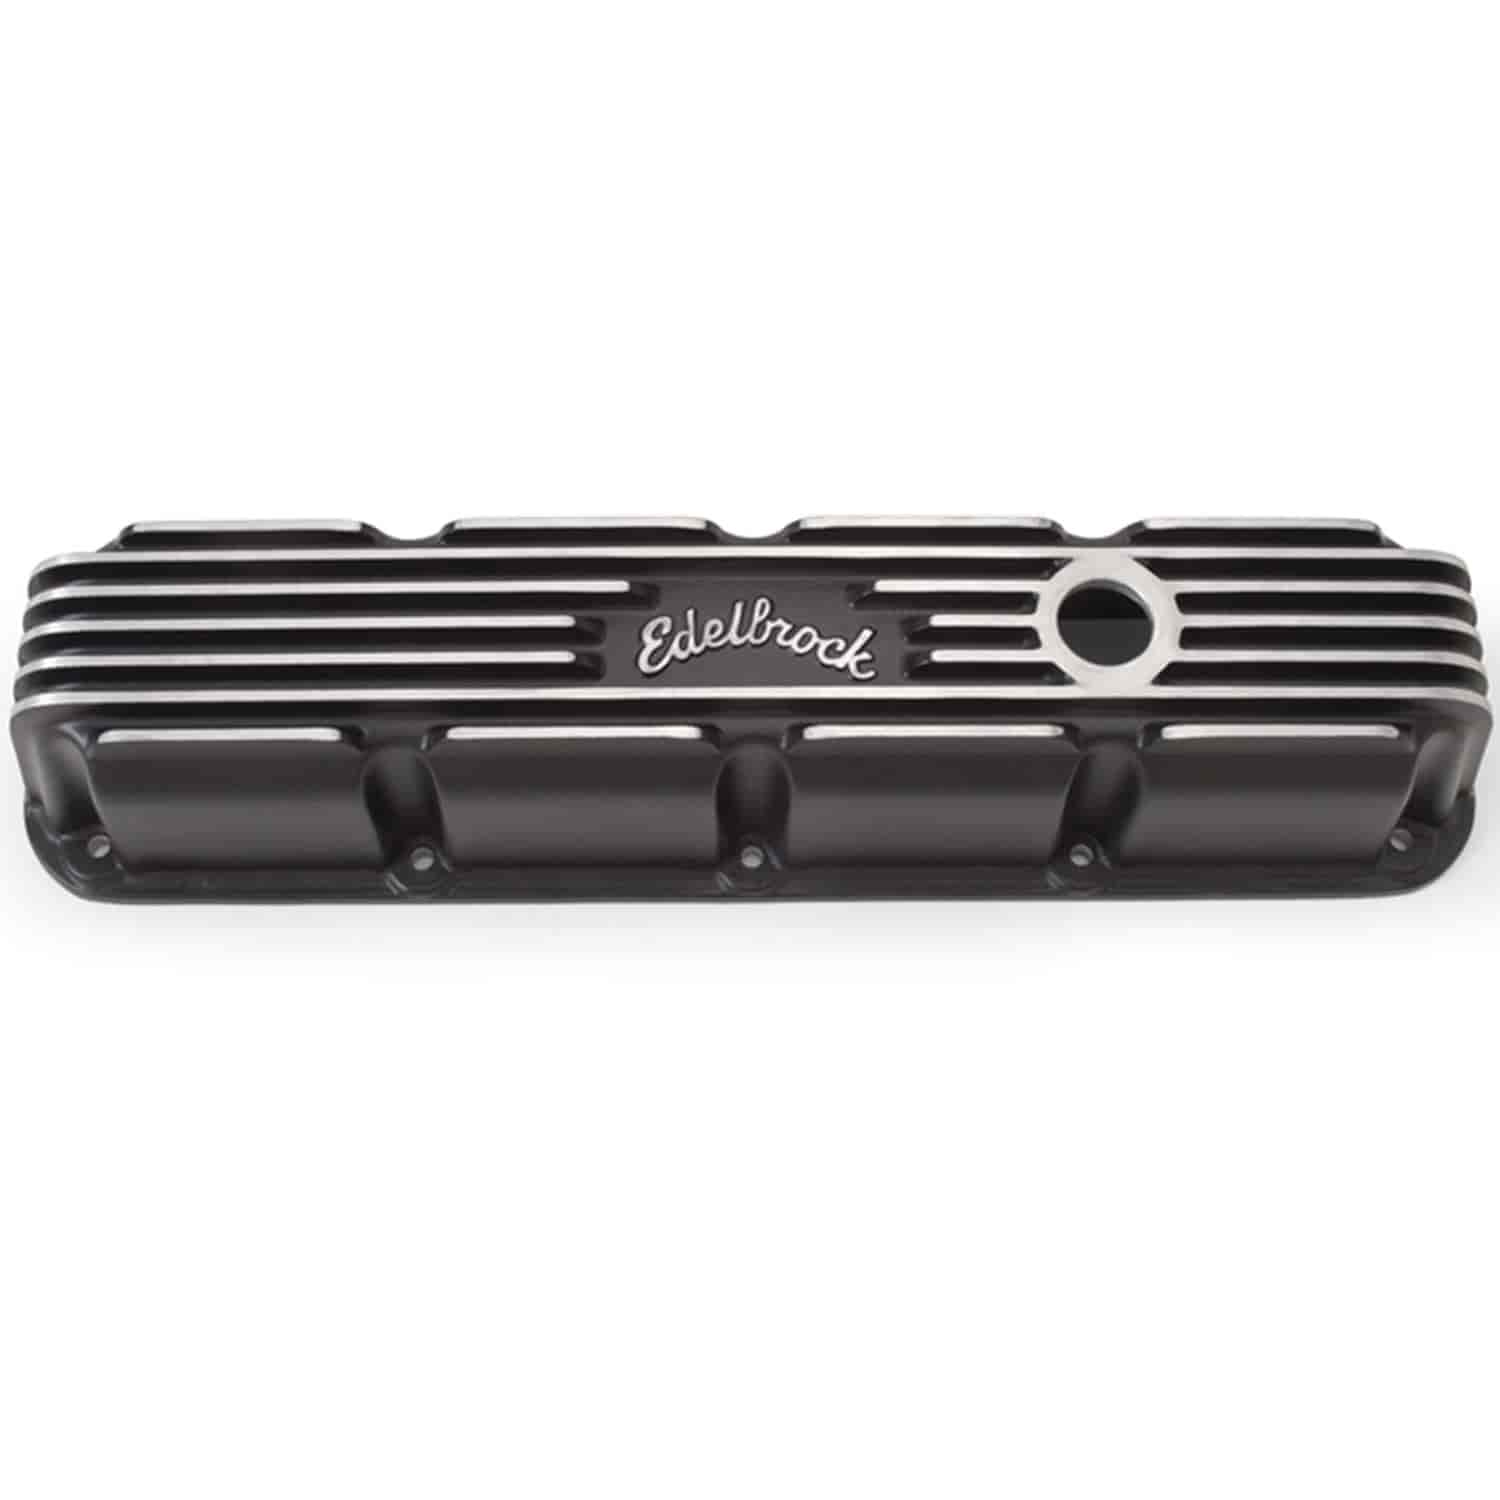 Edelbrock 41773 - Edelbrock Classic Series Valve Covers & Air Cleaners